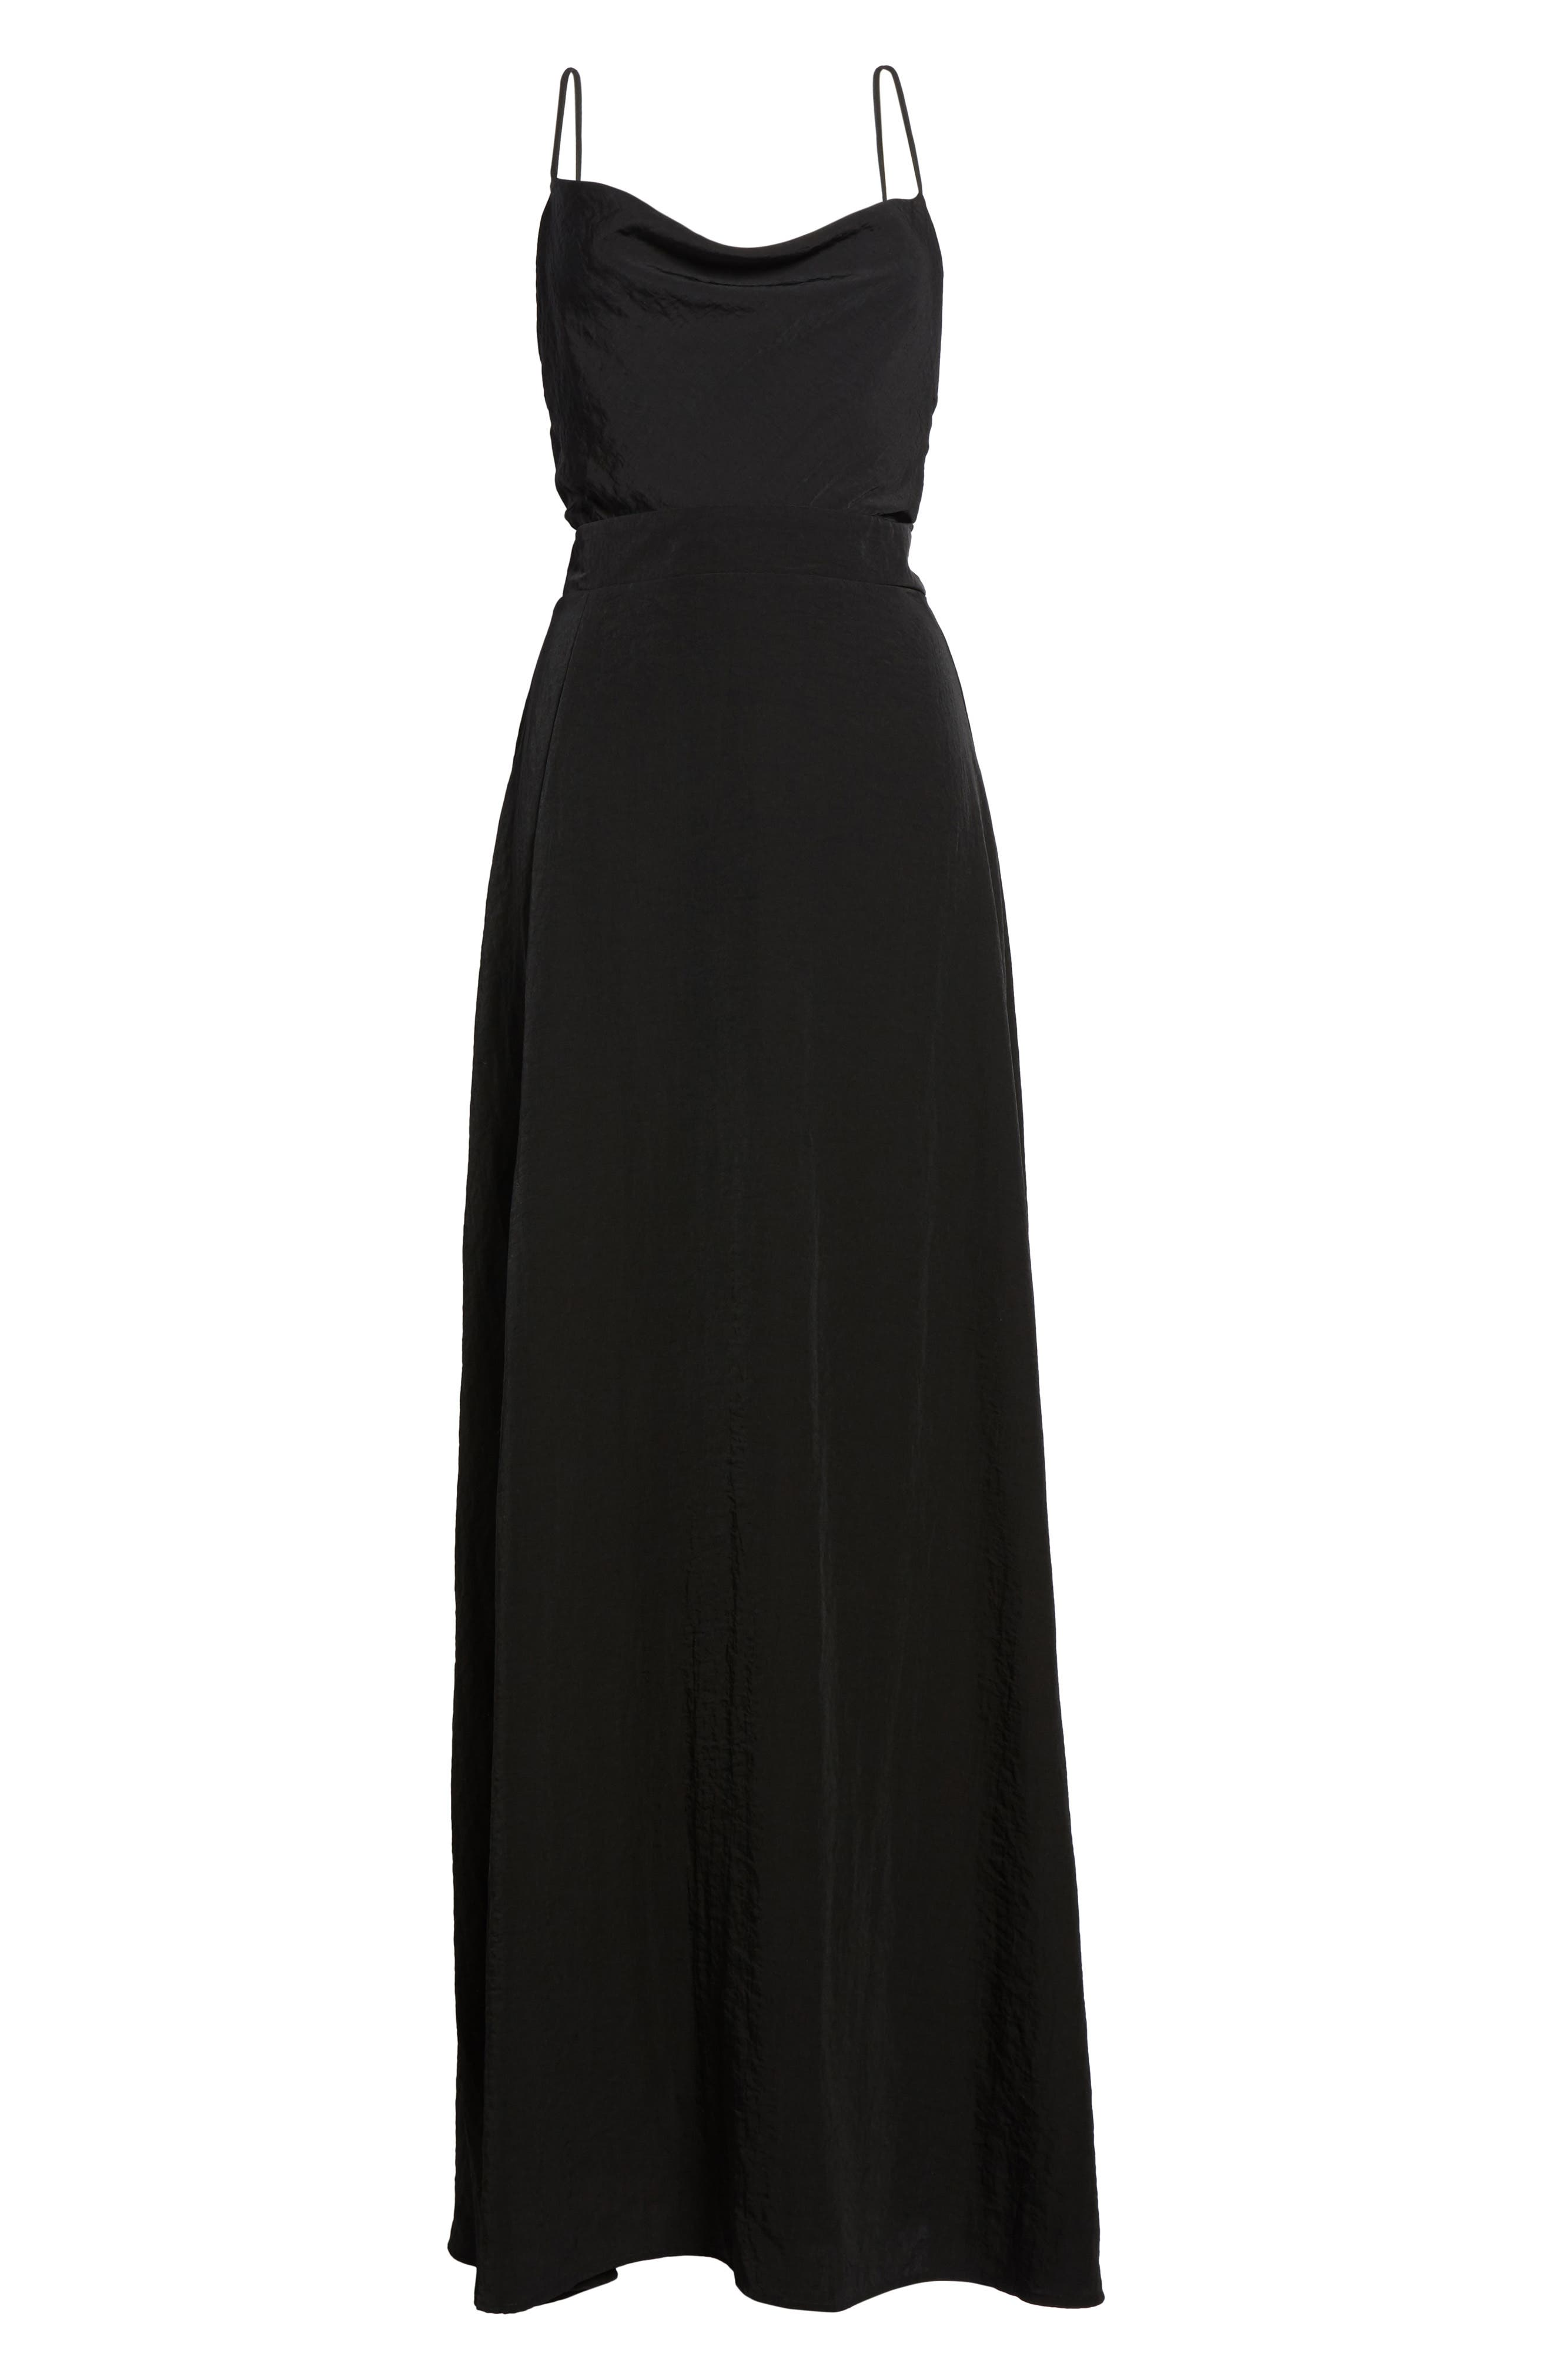 Cowl Neck Maxi Dress,                             Alternate thumbnail 6, color,                             001